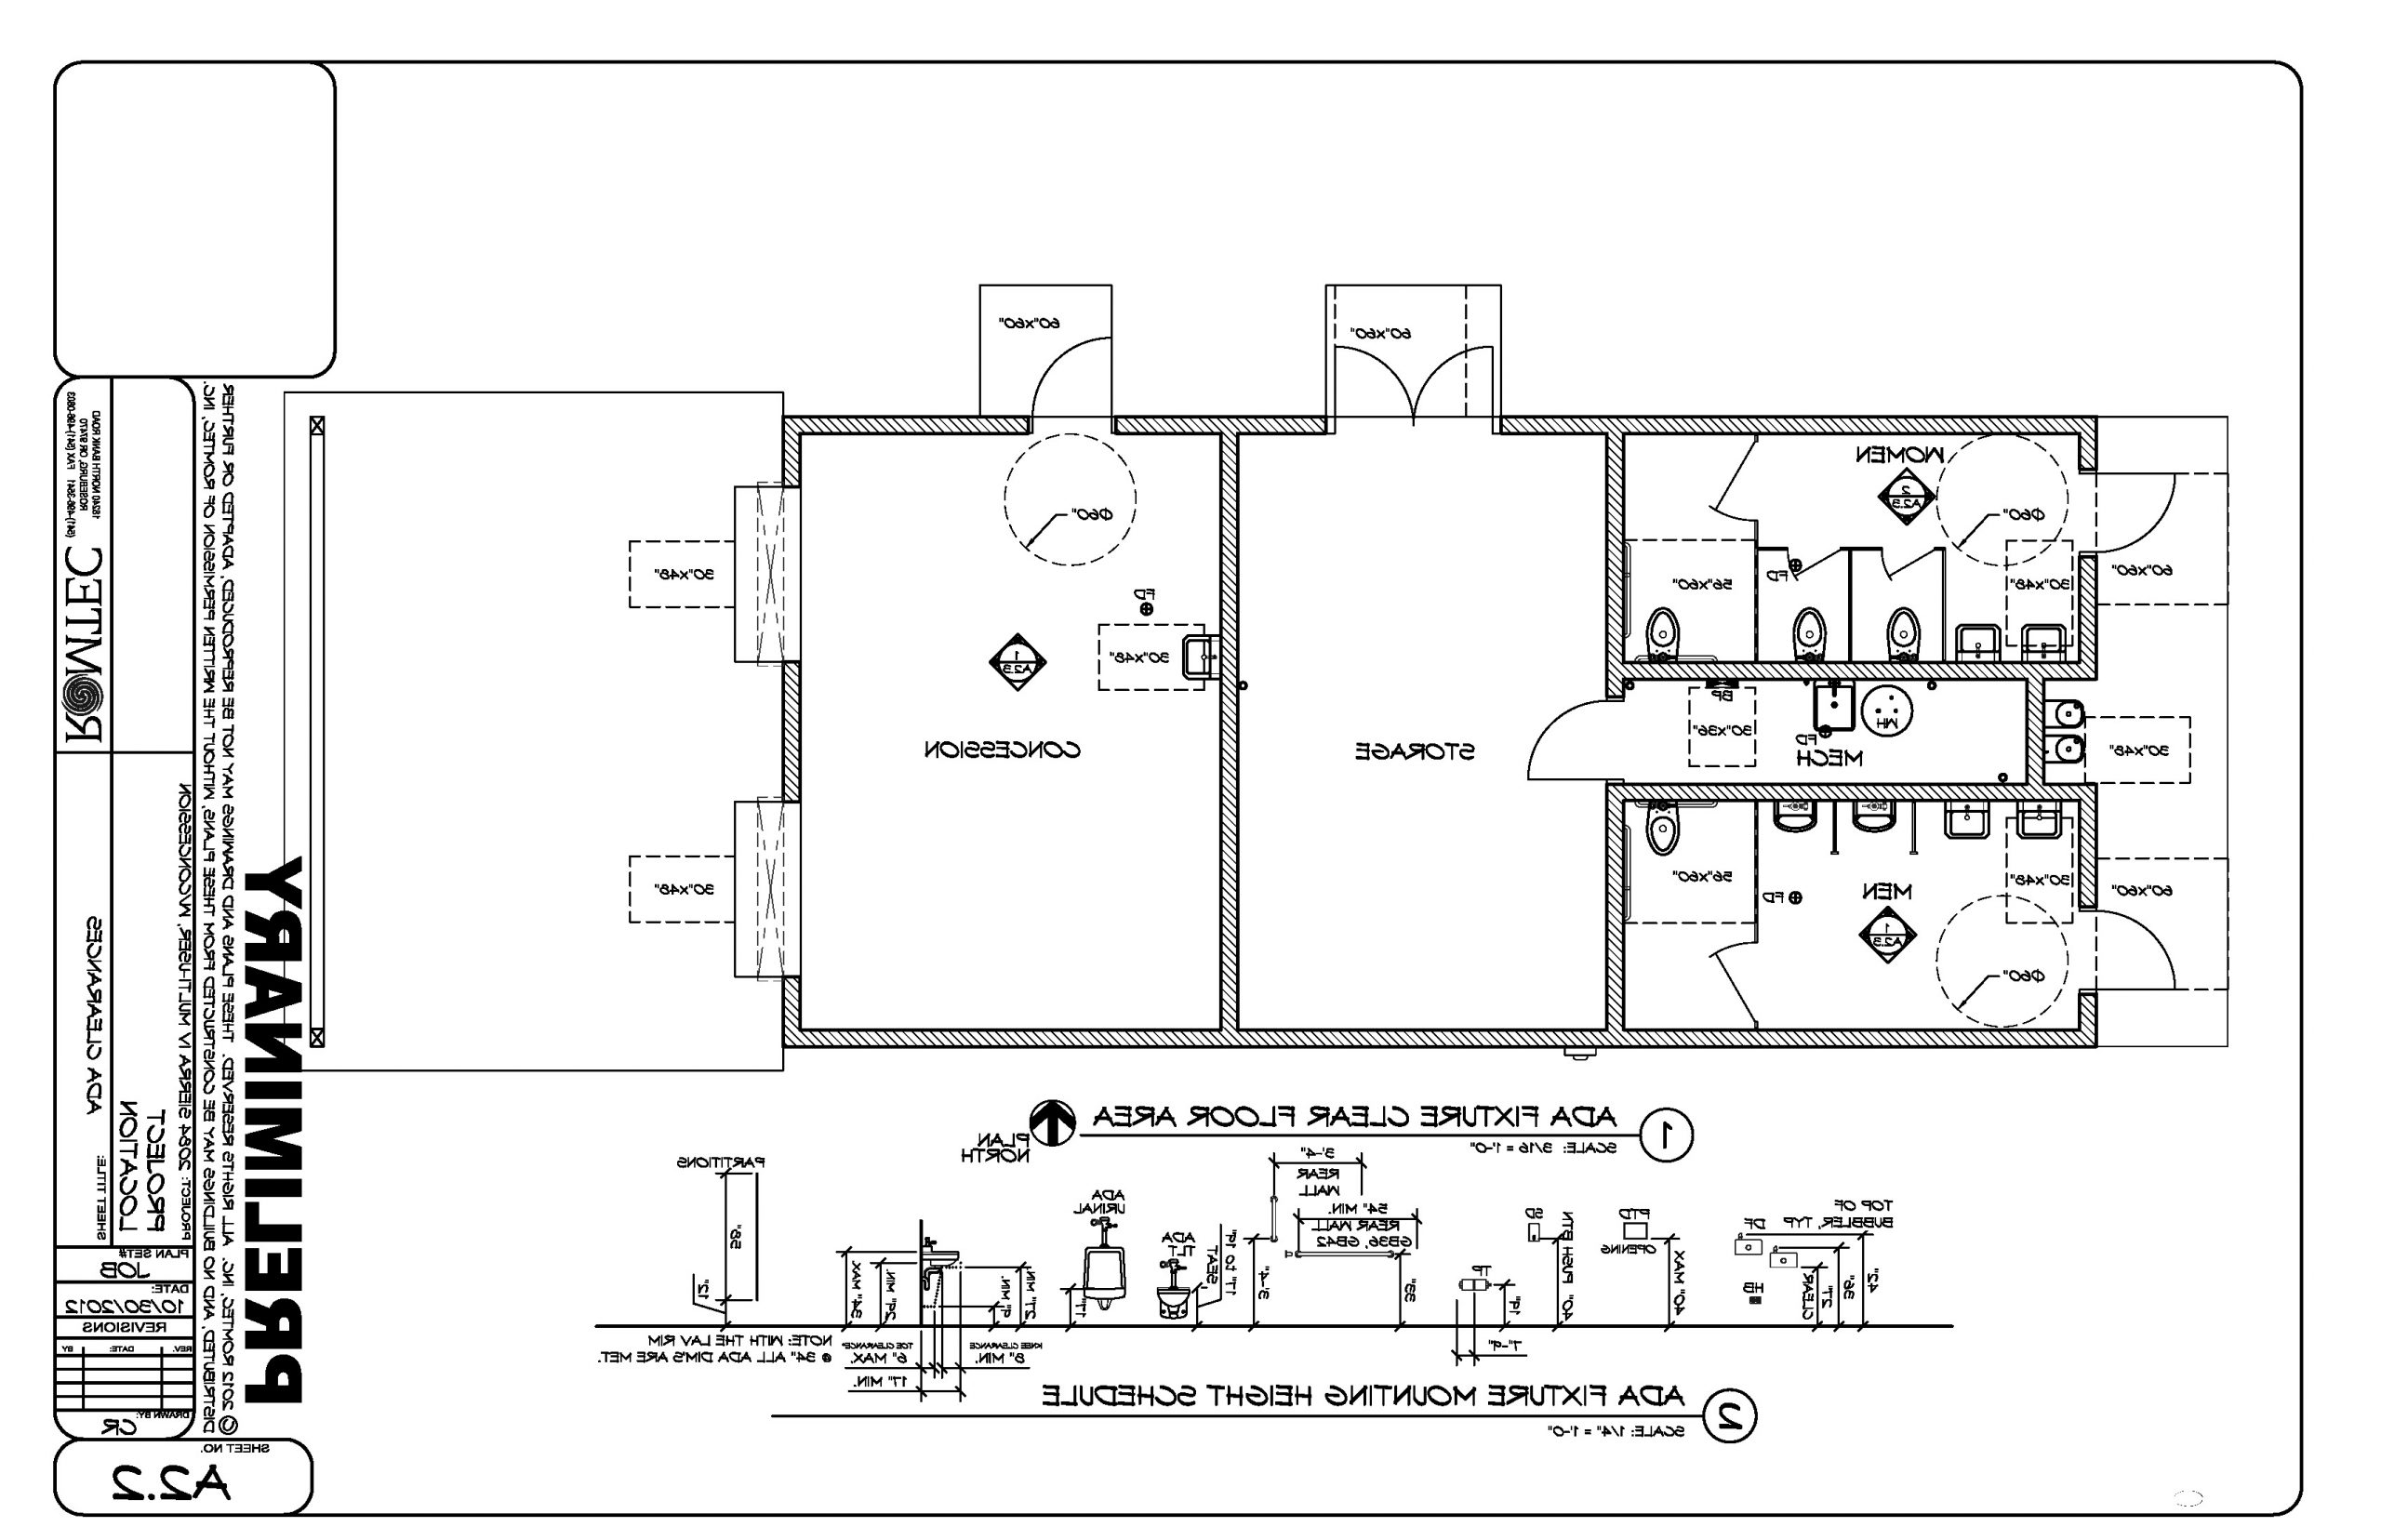 Restroom Design And The Americans With Disabilities Act Ada Bathroom Design Guidelines